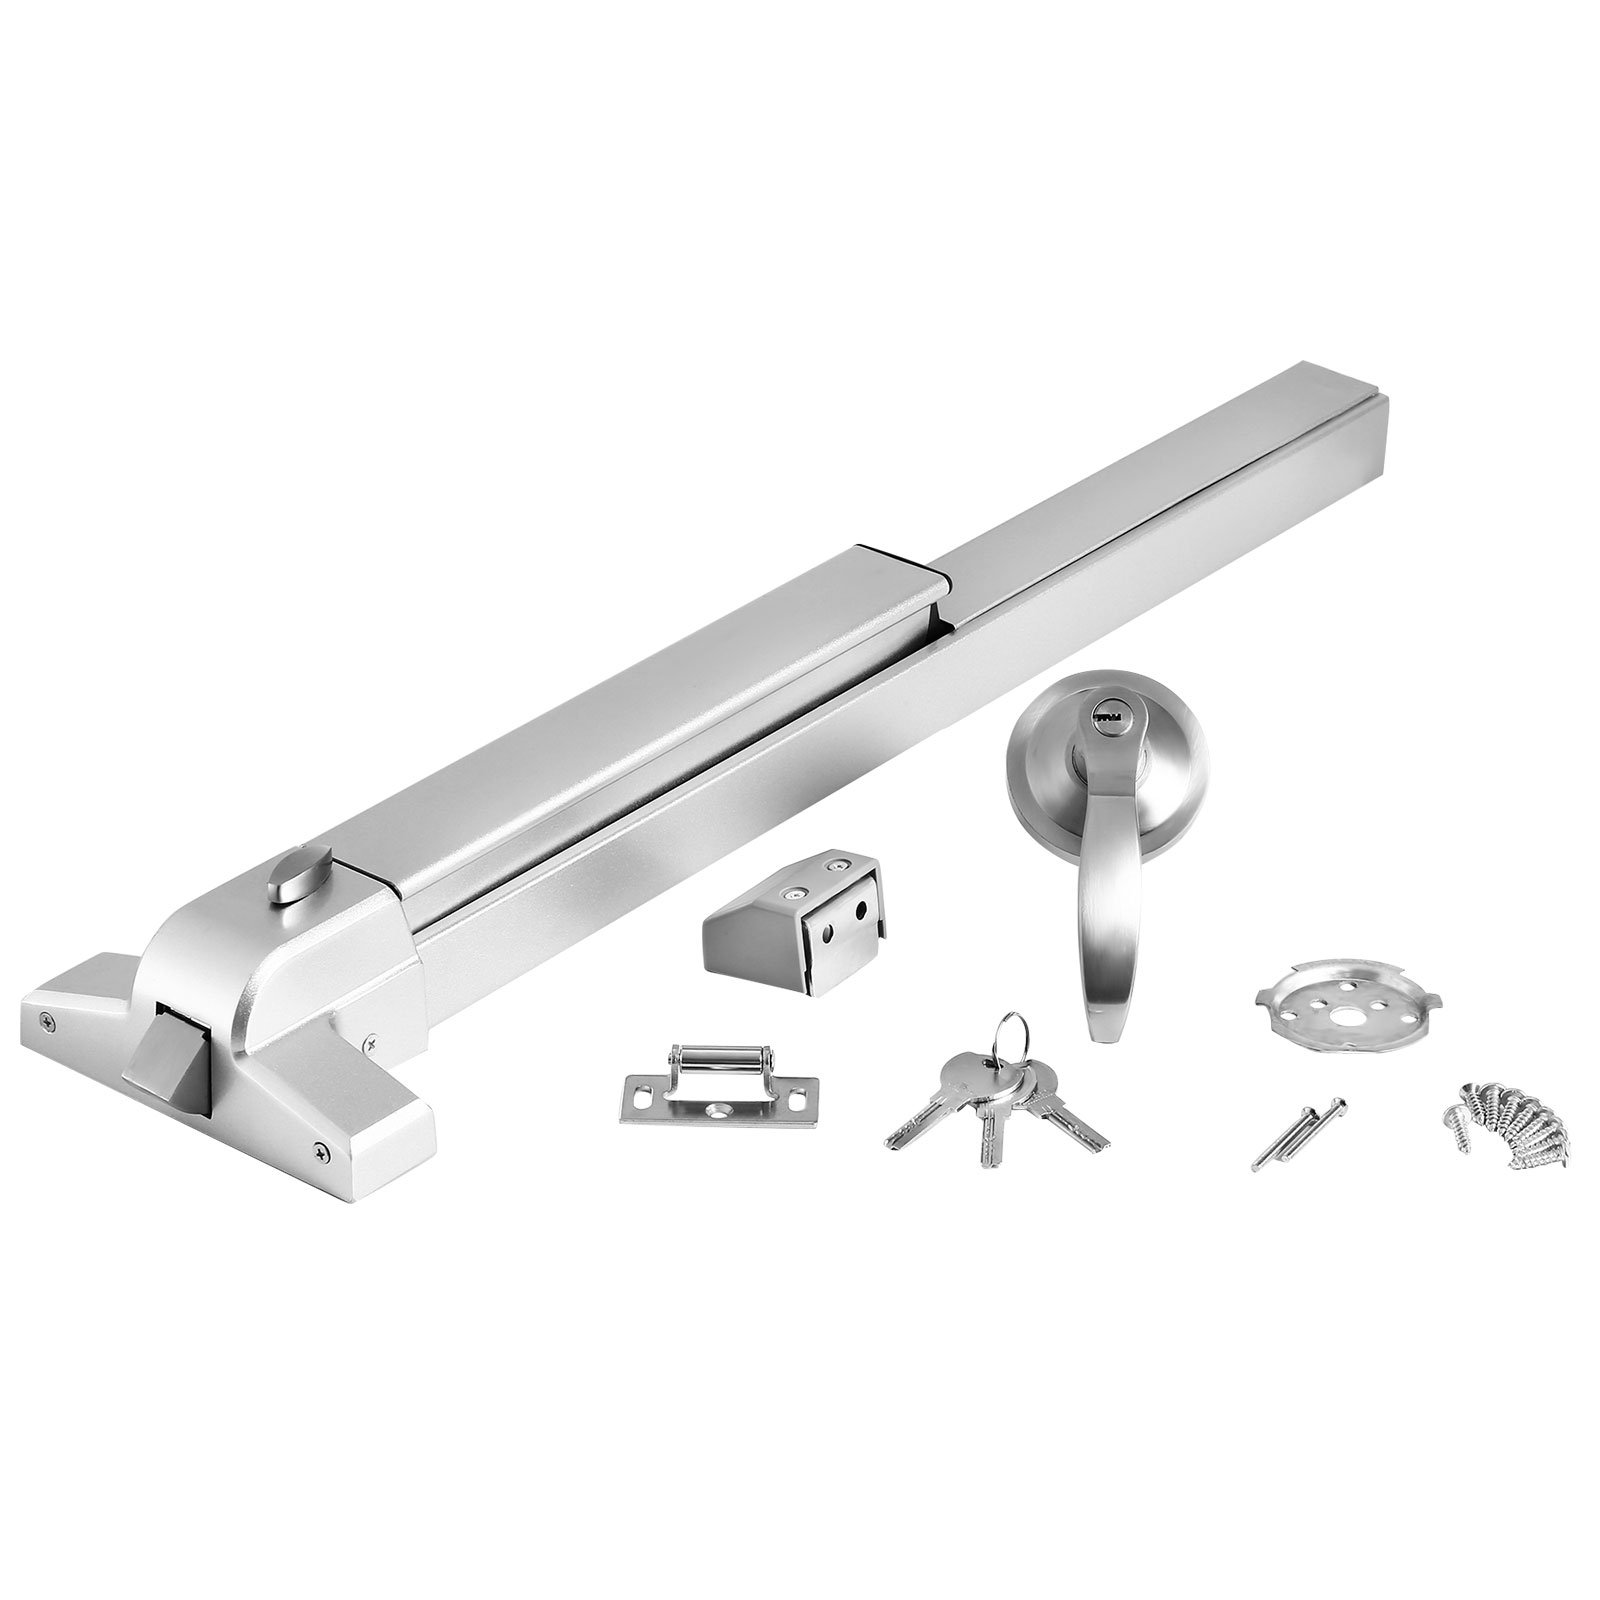 Happybuy Door Push Bar Panic Exit Device with Exterior Lever Commercial Emergency Exit Bar Stainless Steel Panic Exit Device Suitable for Wood Metal Door (Push Bar with Exterior Lever)